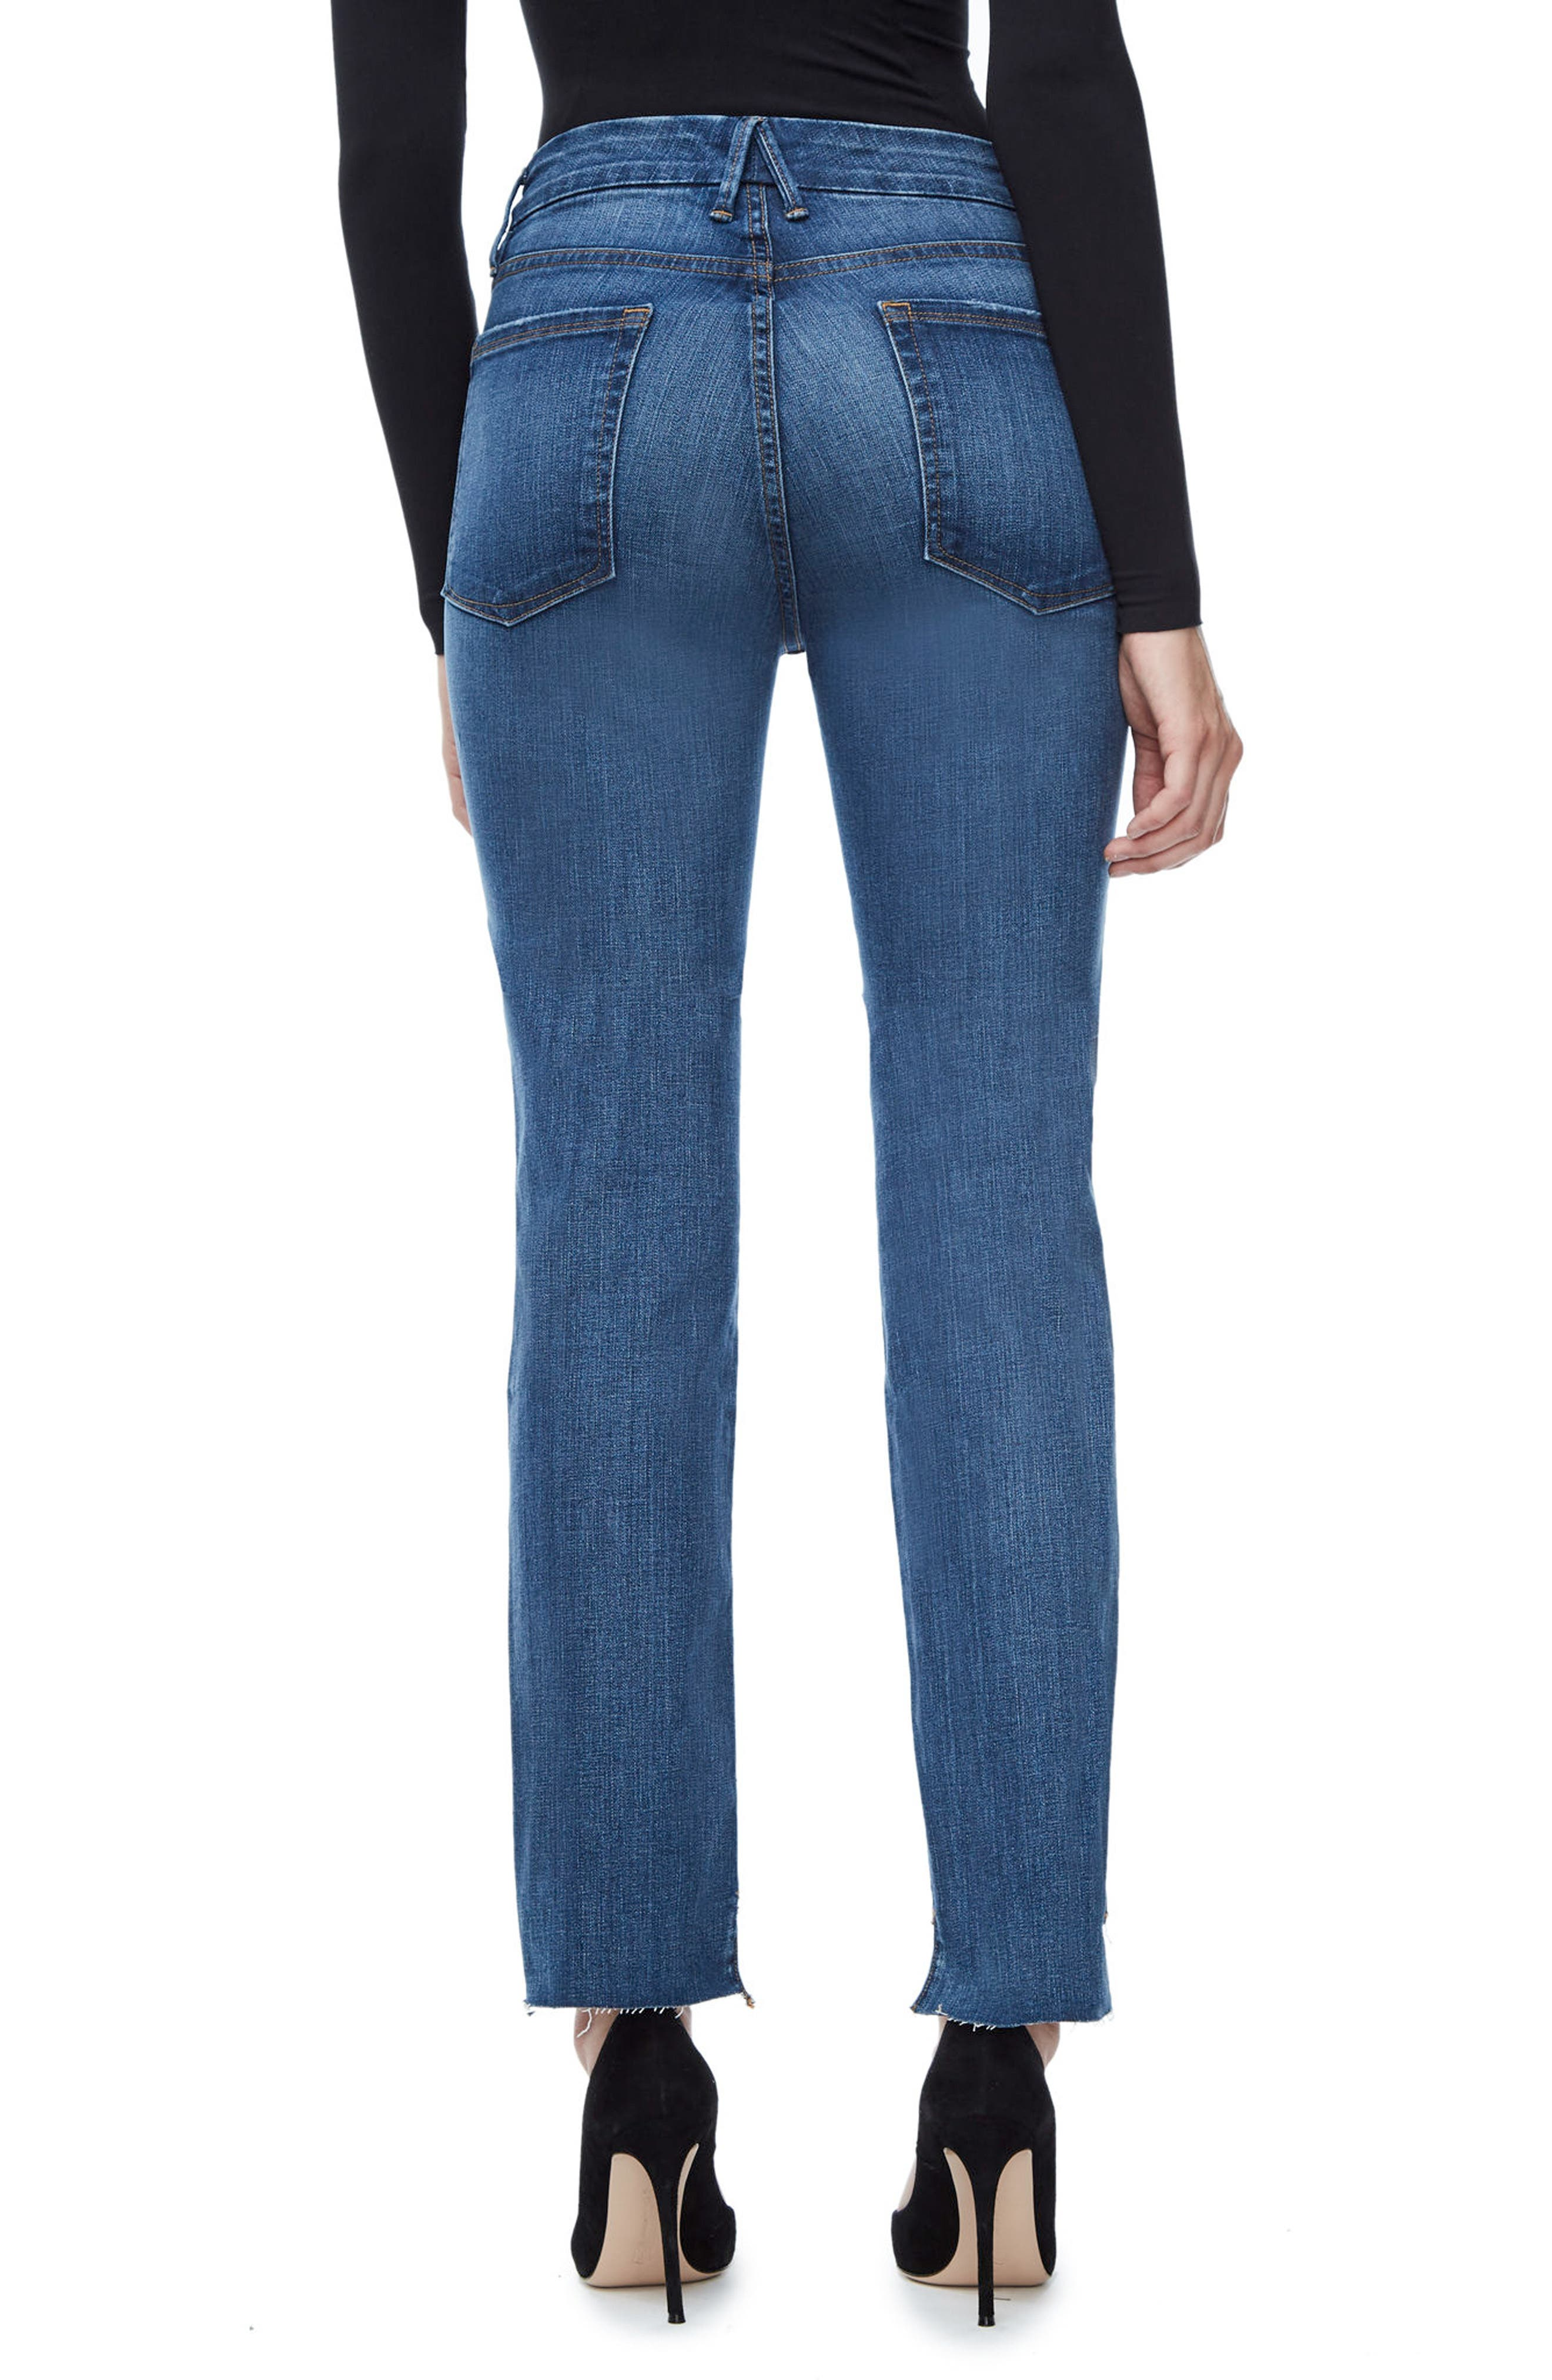 Alternate Image 3  - Good American Good Straight Raw Hem High Waist Straight Leg Jeans (Blue 086) (Extended Sizes)